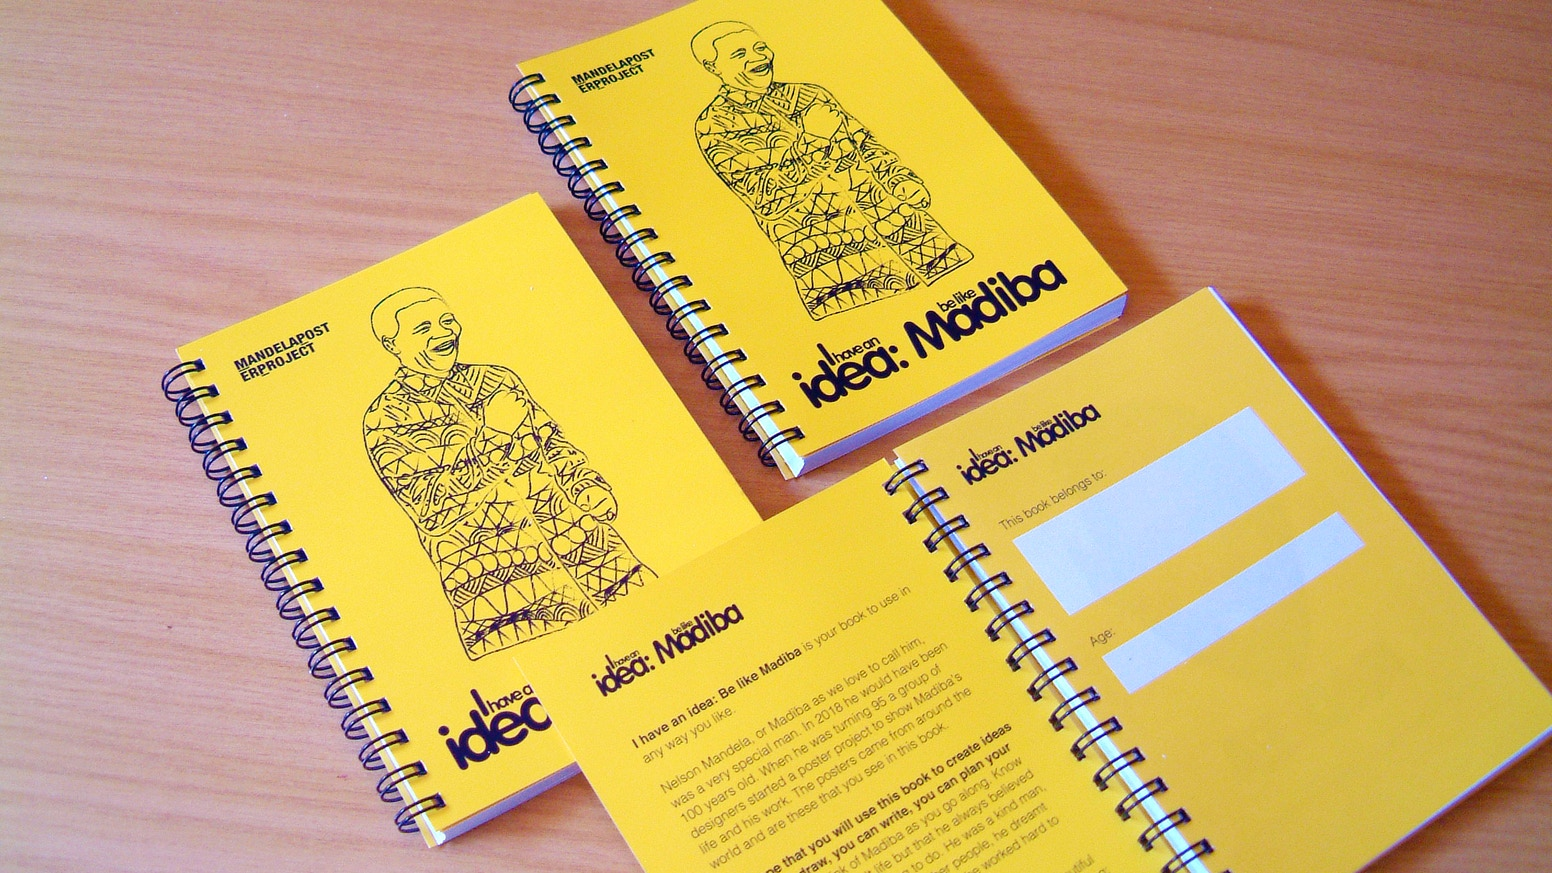 568334dd6 I have an idea: Be like Madiba Journal by Mandela Poster Project ...